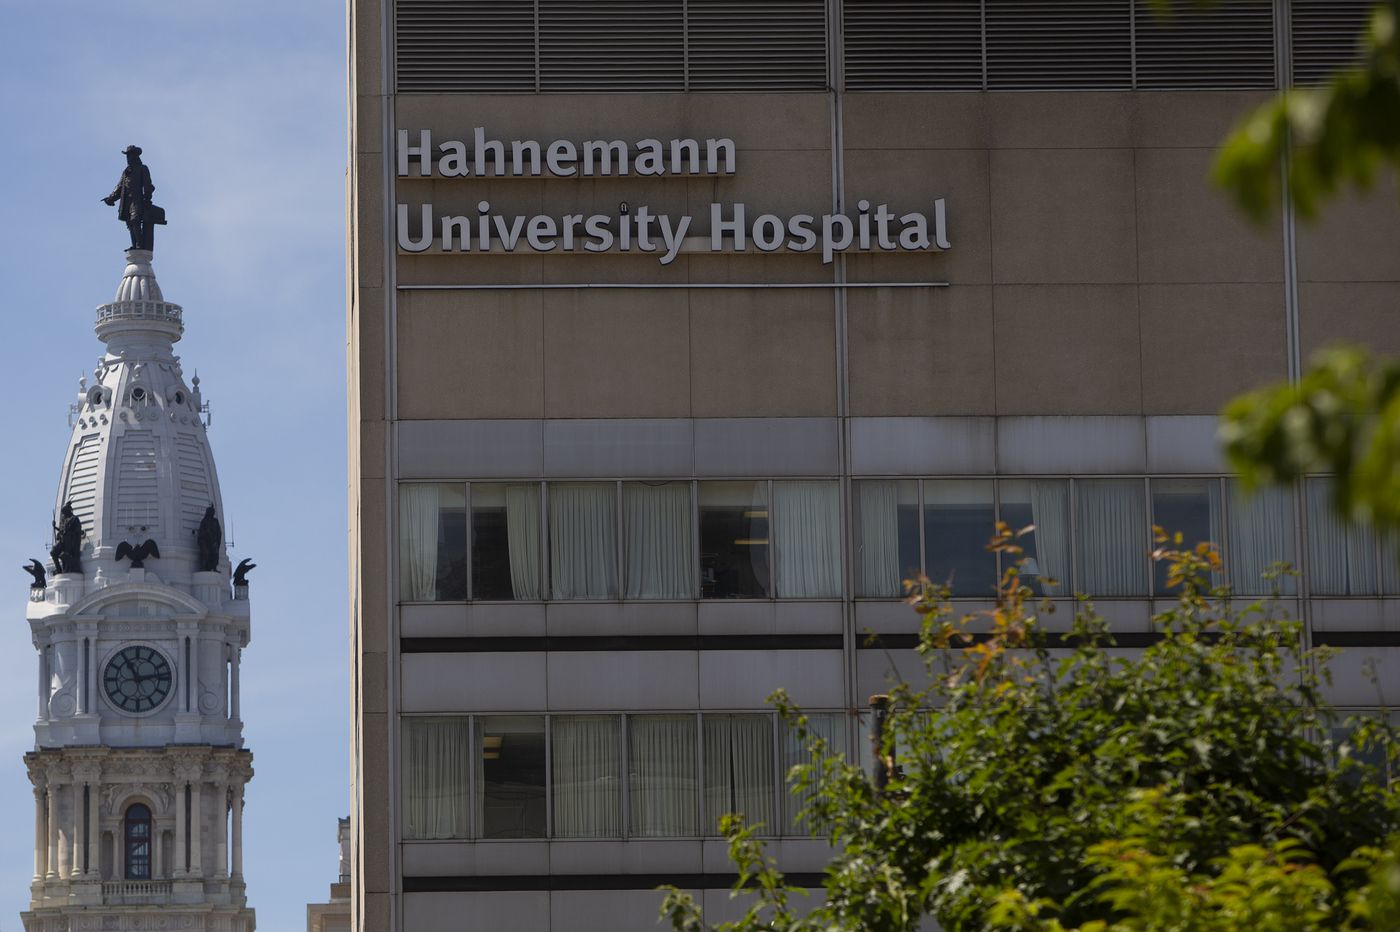 Bernie Sanders and Helen Gym: Philly's fight for Hahnemann represents the need for quality health care for all | Opinion